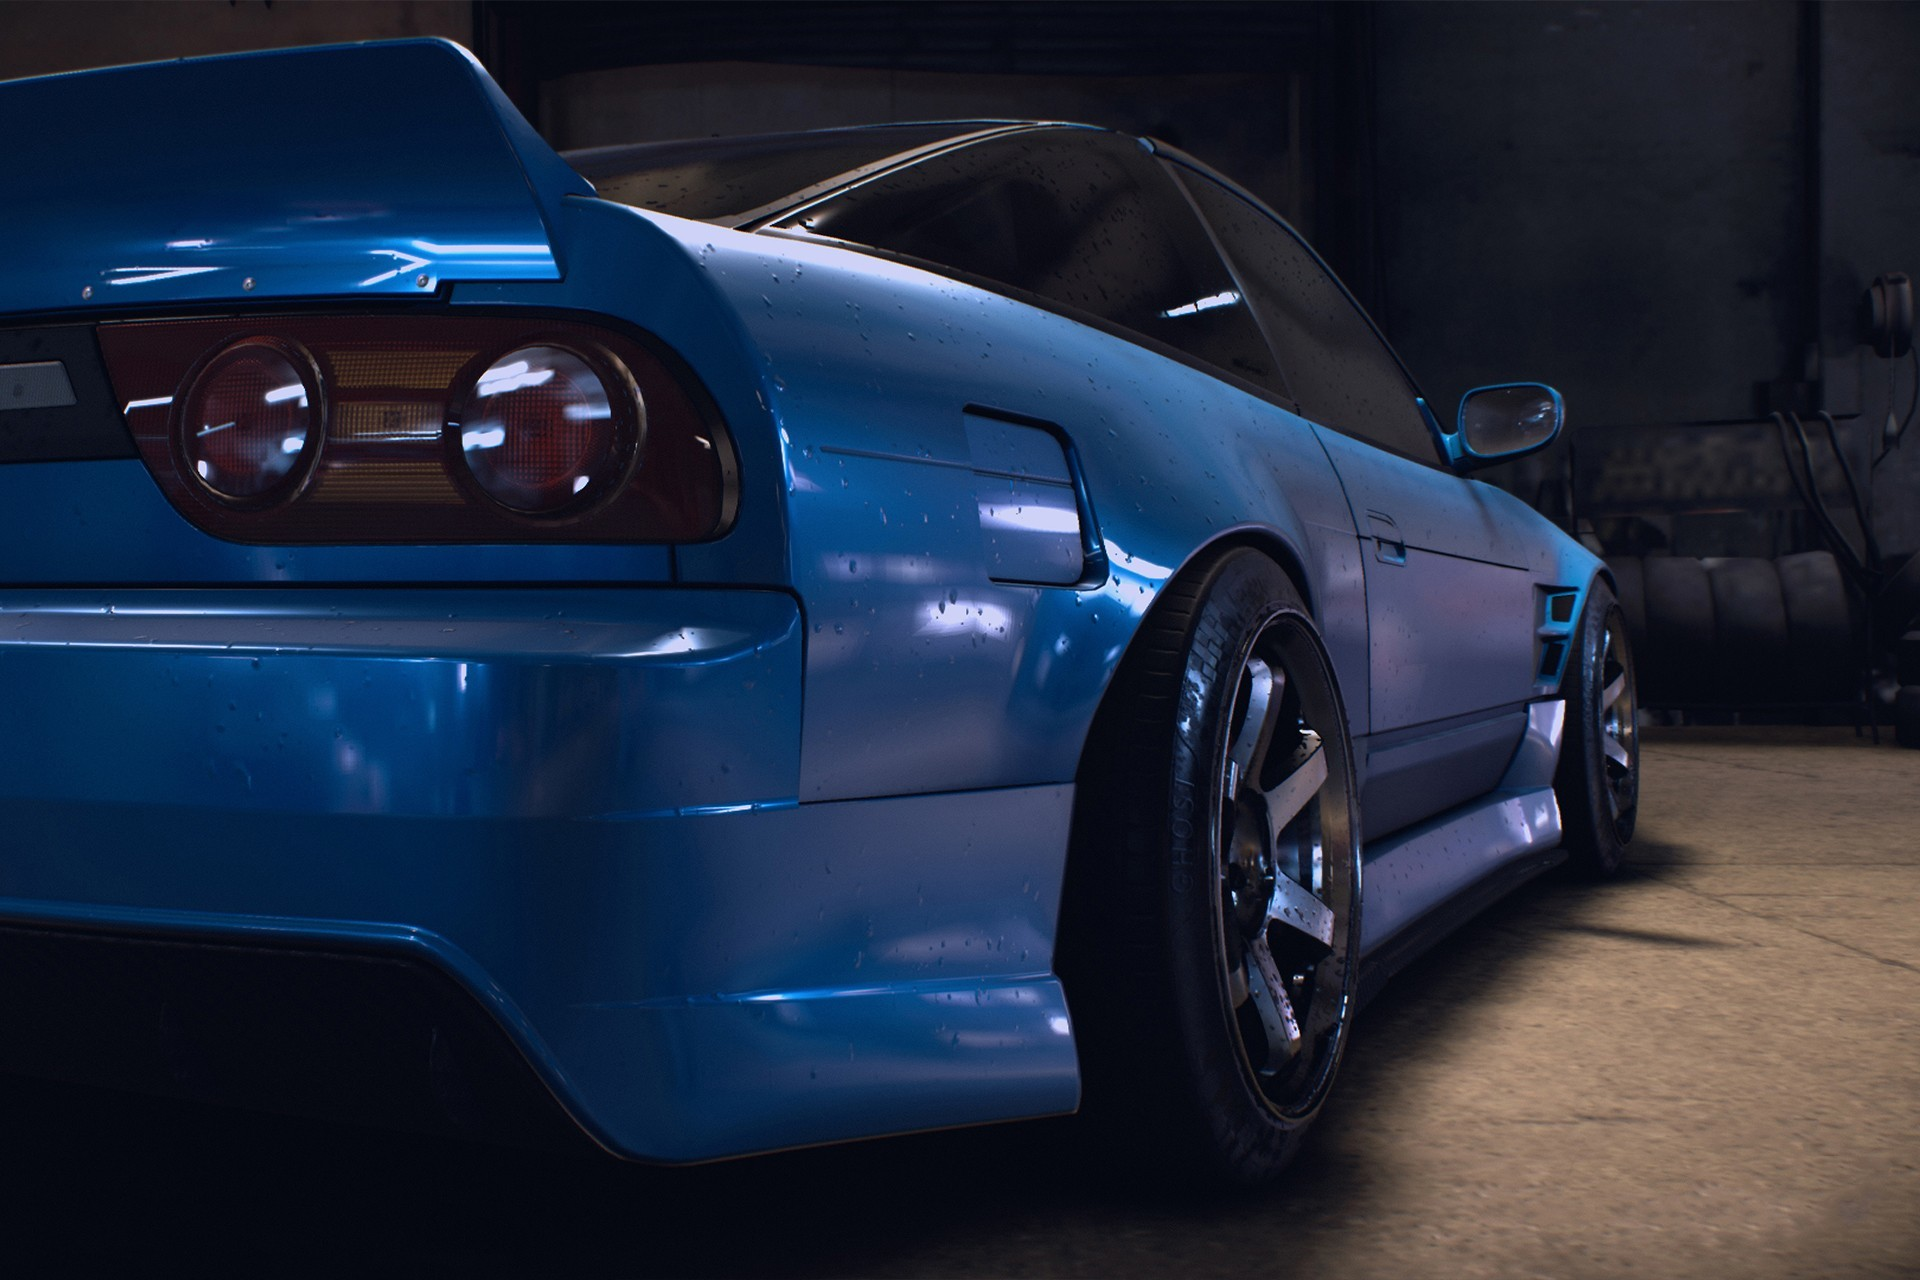 1920x1280 Need for Speed, 2015, Video Games, Racing, Car, Nissan, 180